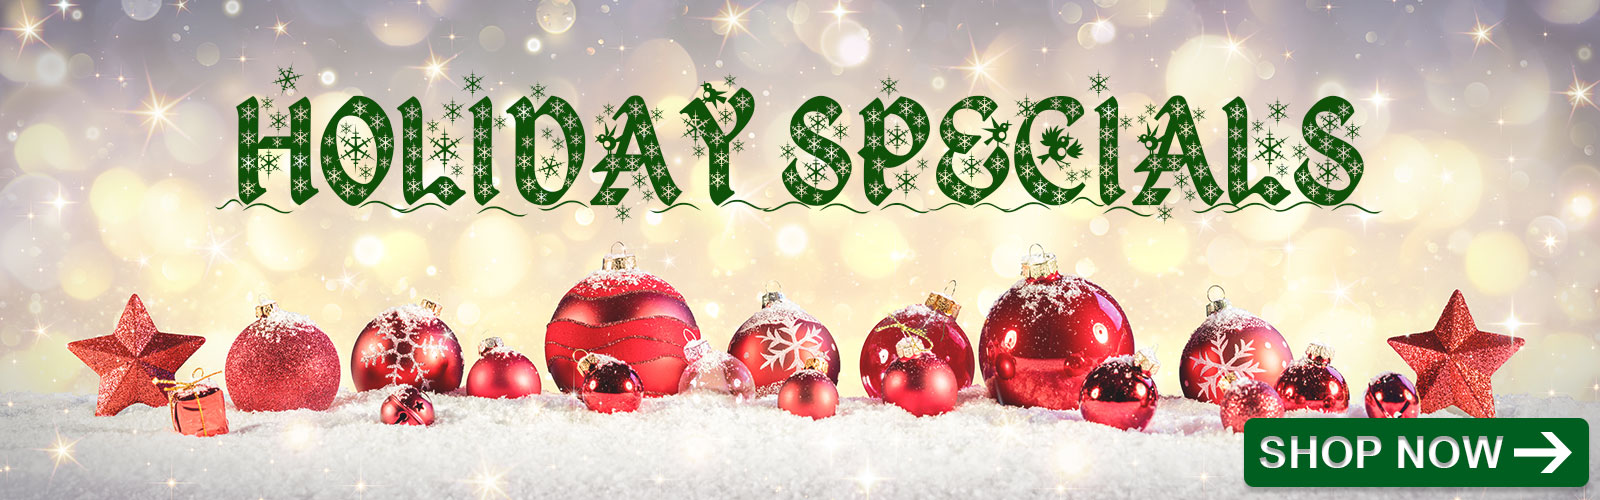 holiday-specials-2018-homepage.jpg